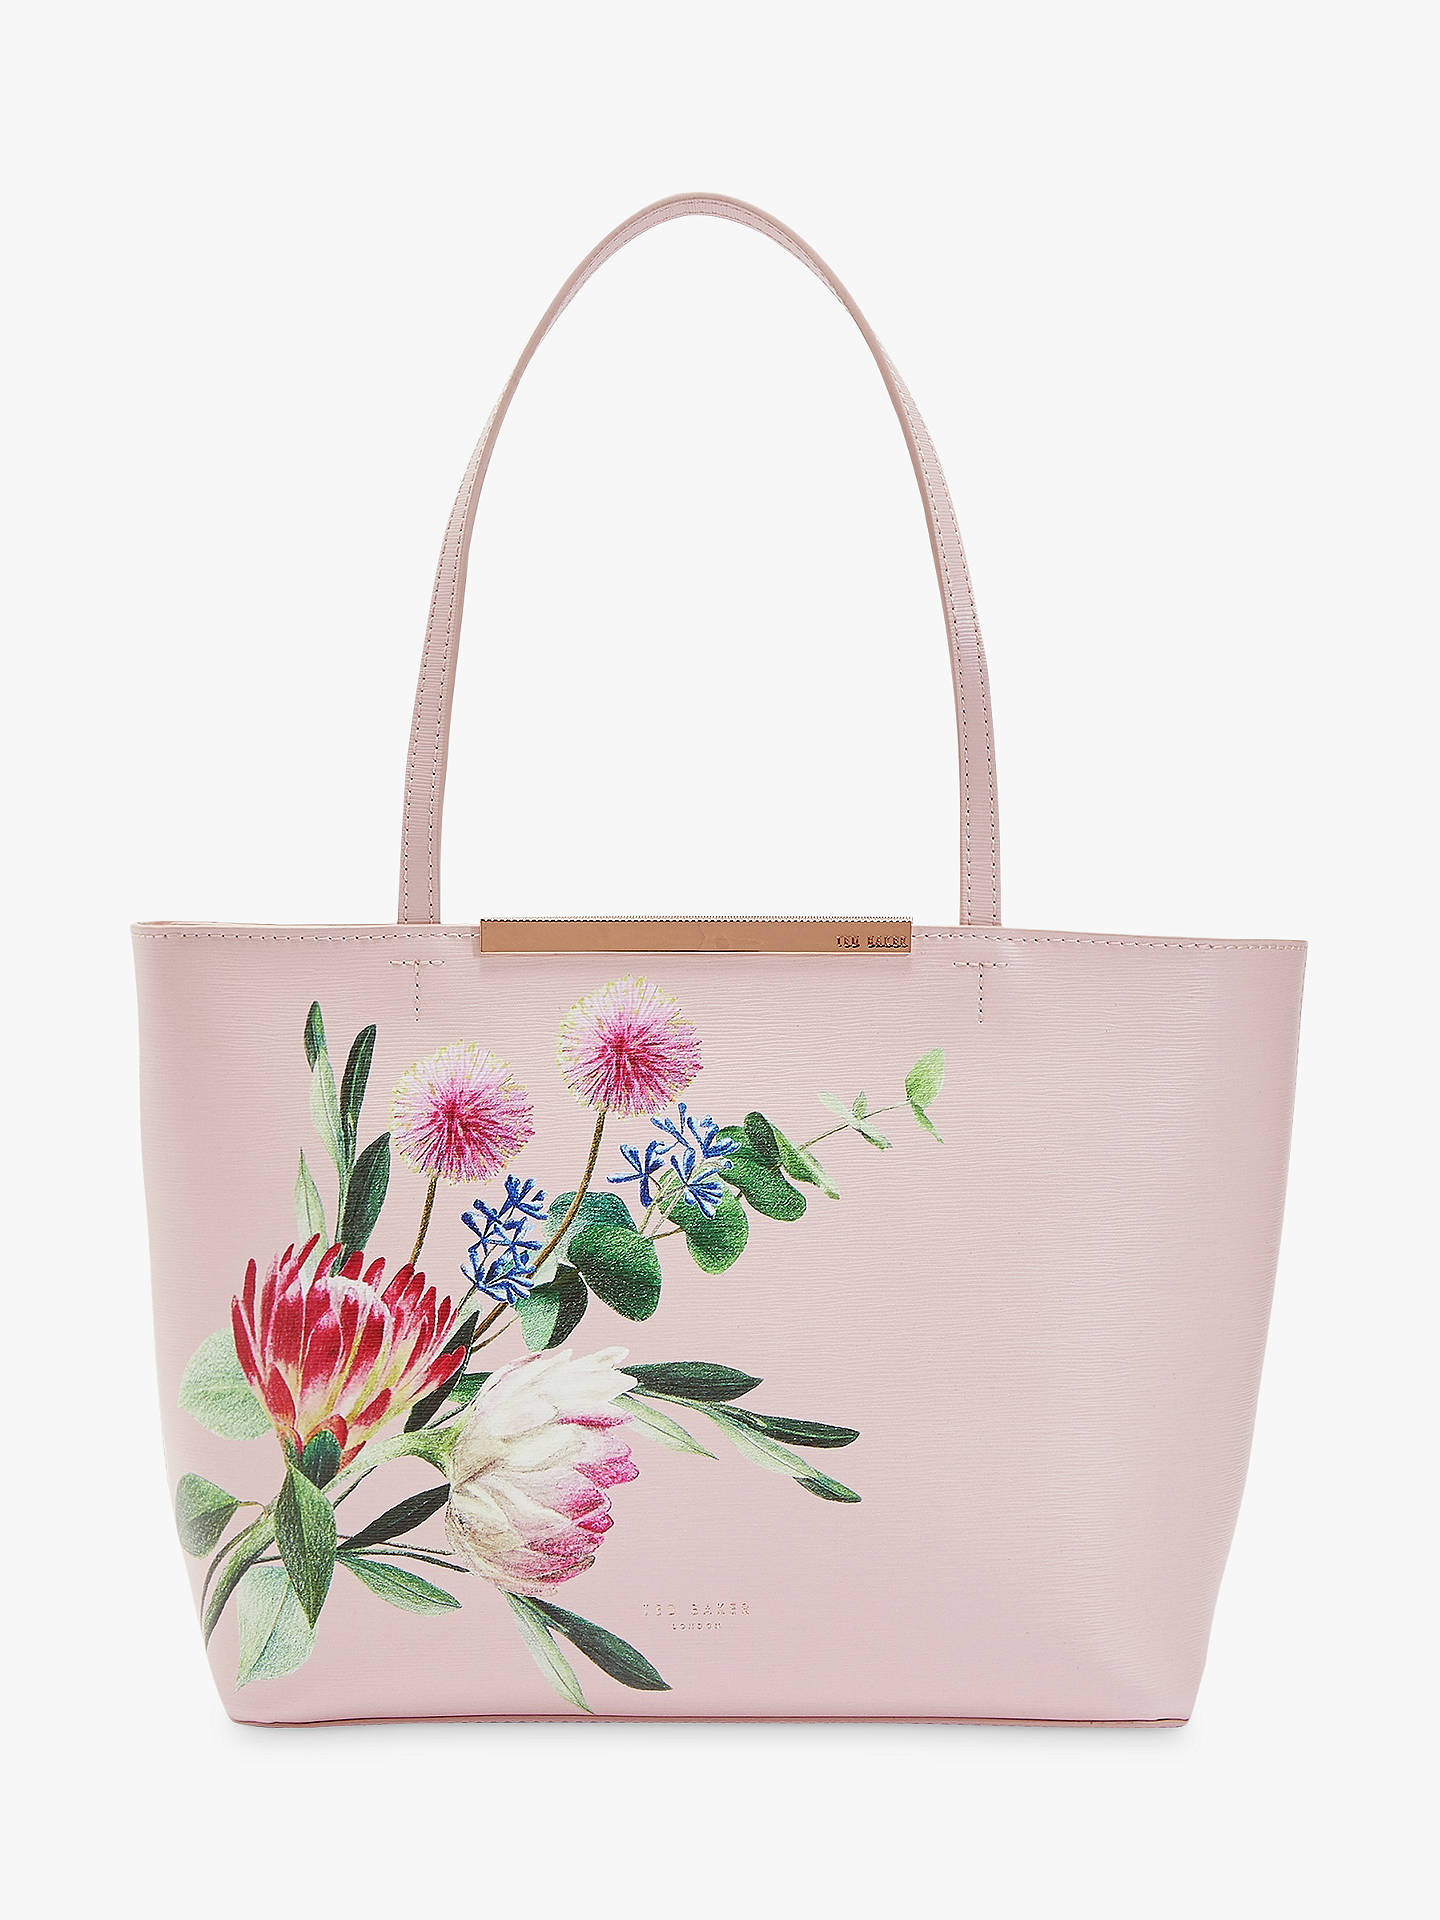 369b6cb4813b5 Buy Ted Baker Abiiey Mini Shopper Bag, Light Pink Online at johnlewis.com  ...